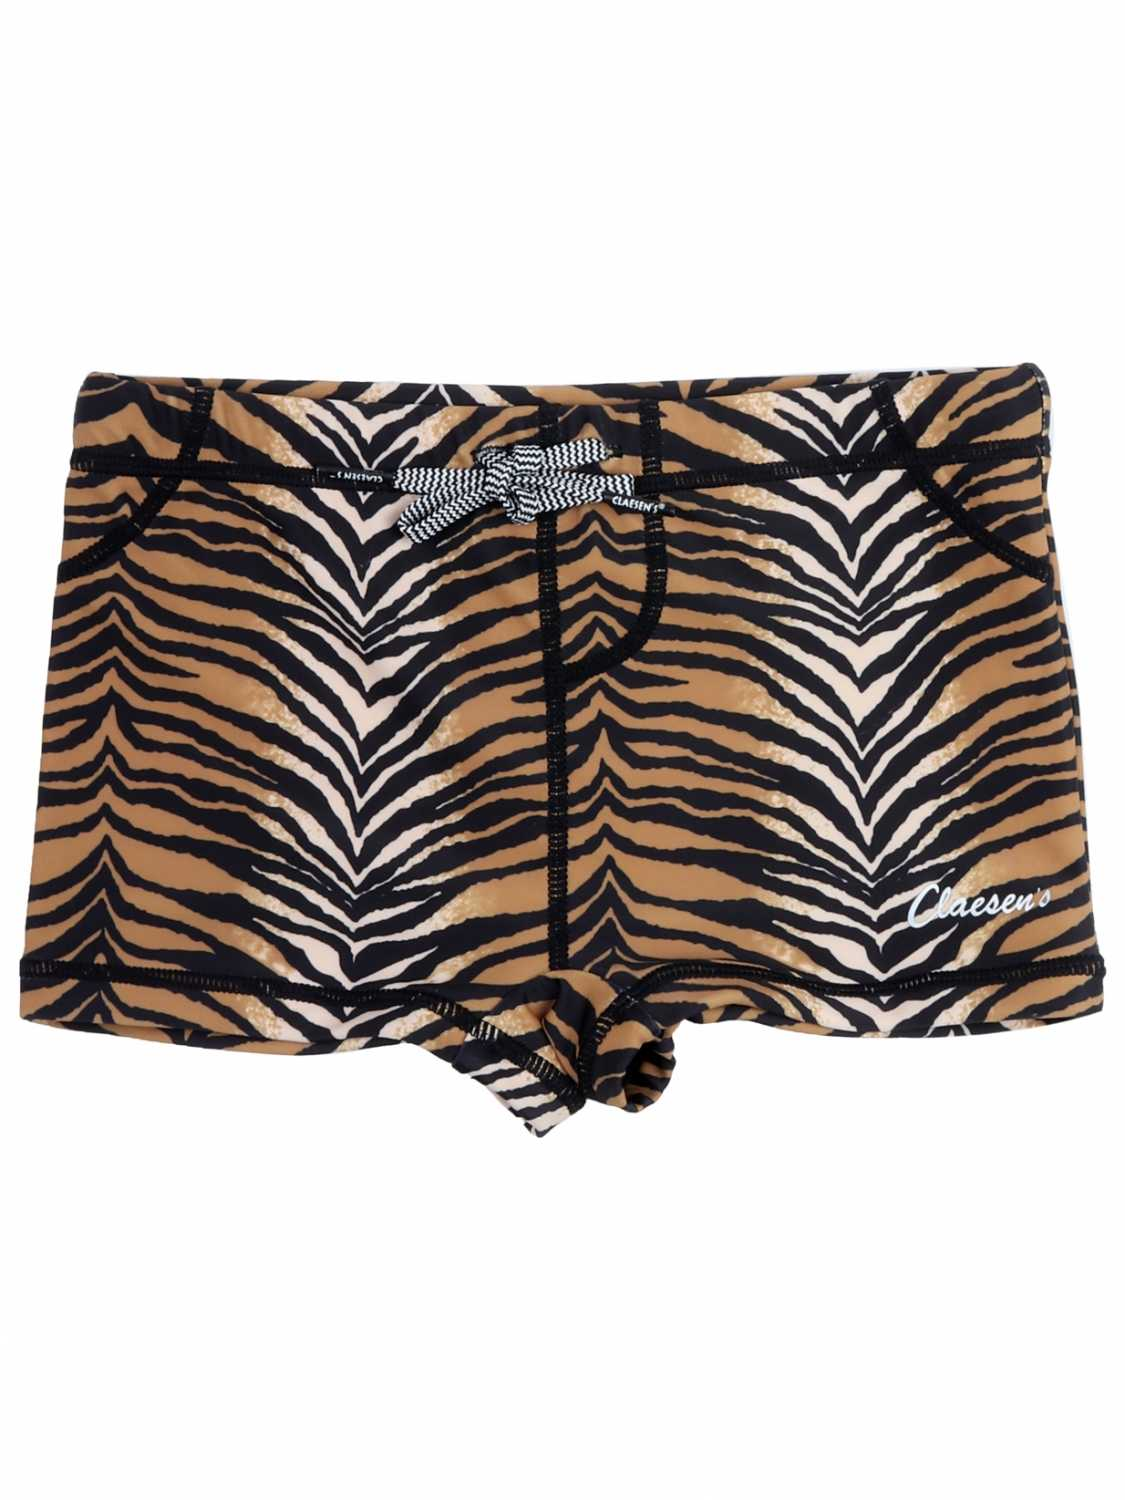 claesens Zwembroek  - All Over Print - Micro polyester/spandex